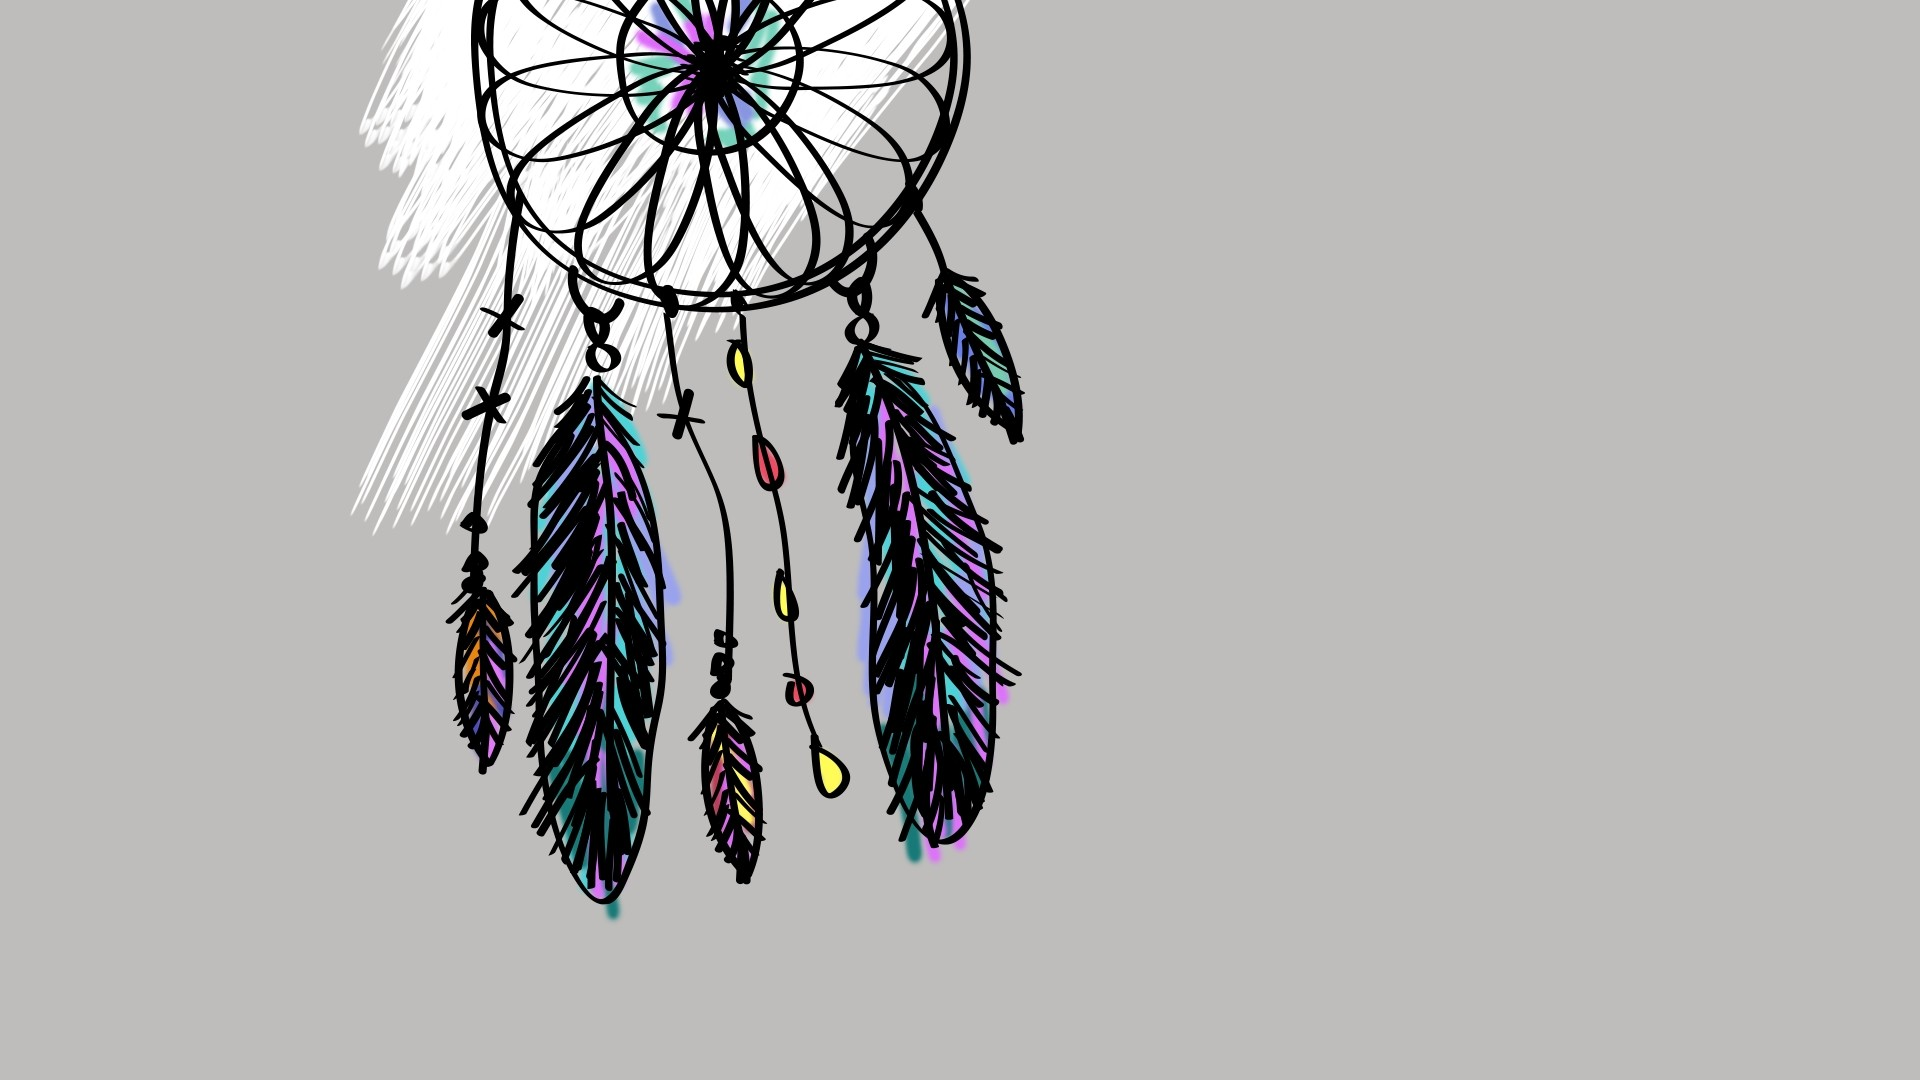 Dreamcatcher Wallpaper for pc